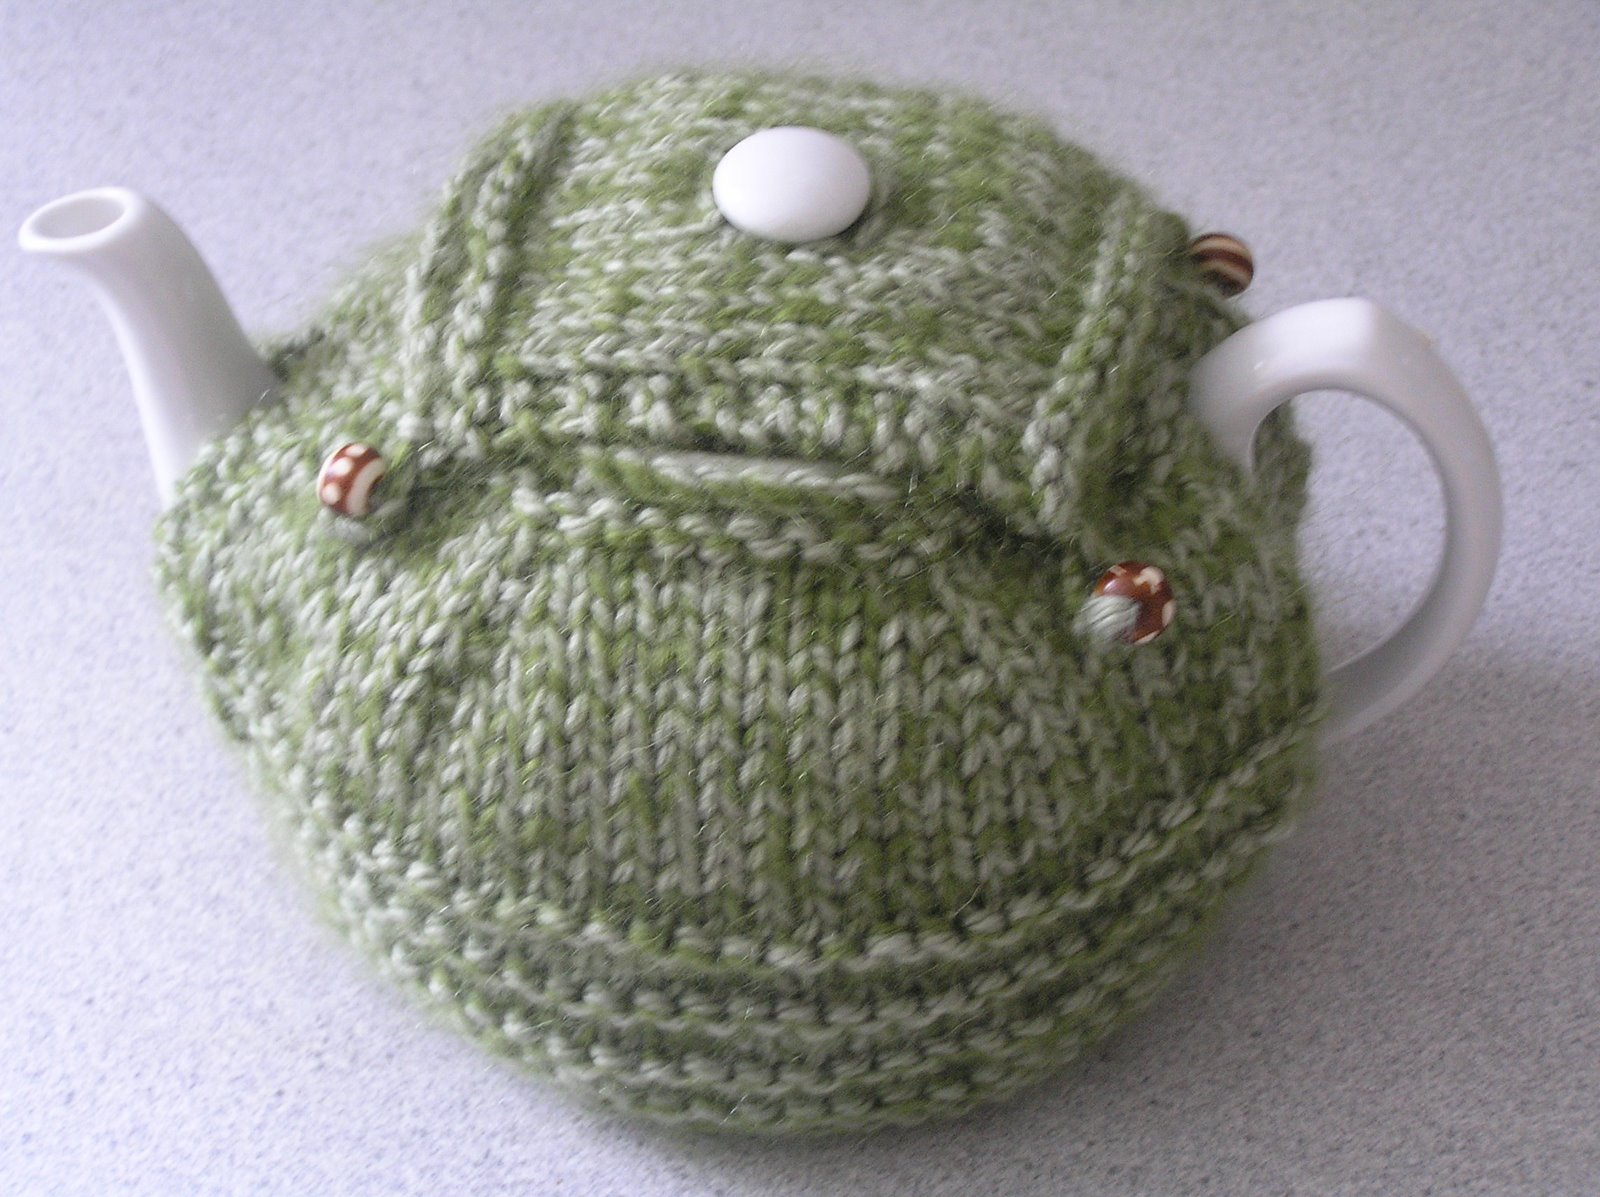 Knitting Patterns Tea Cosy Easy Image collections - handicraft ideas ...